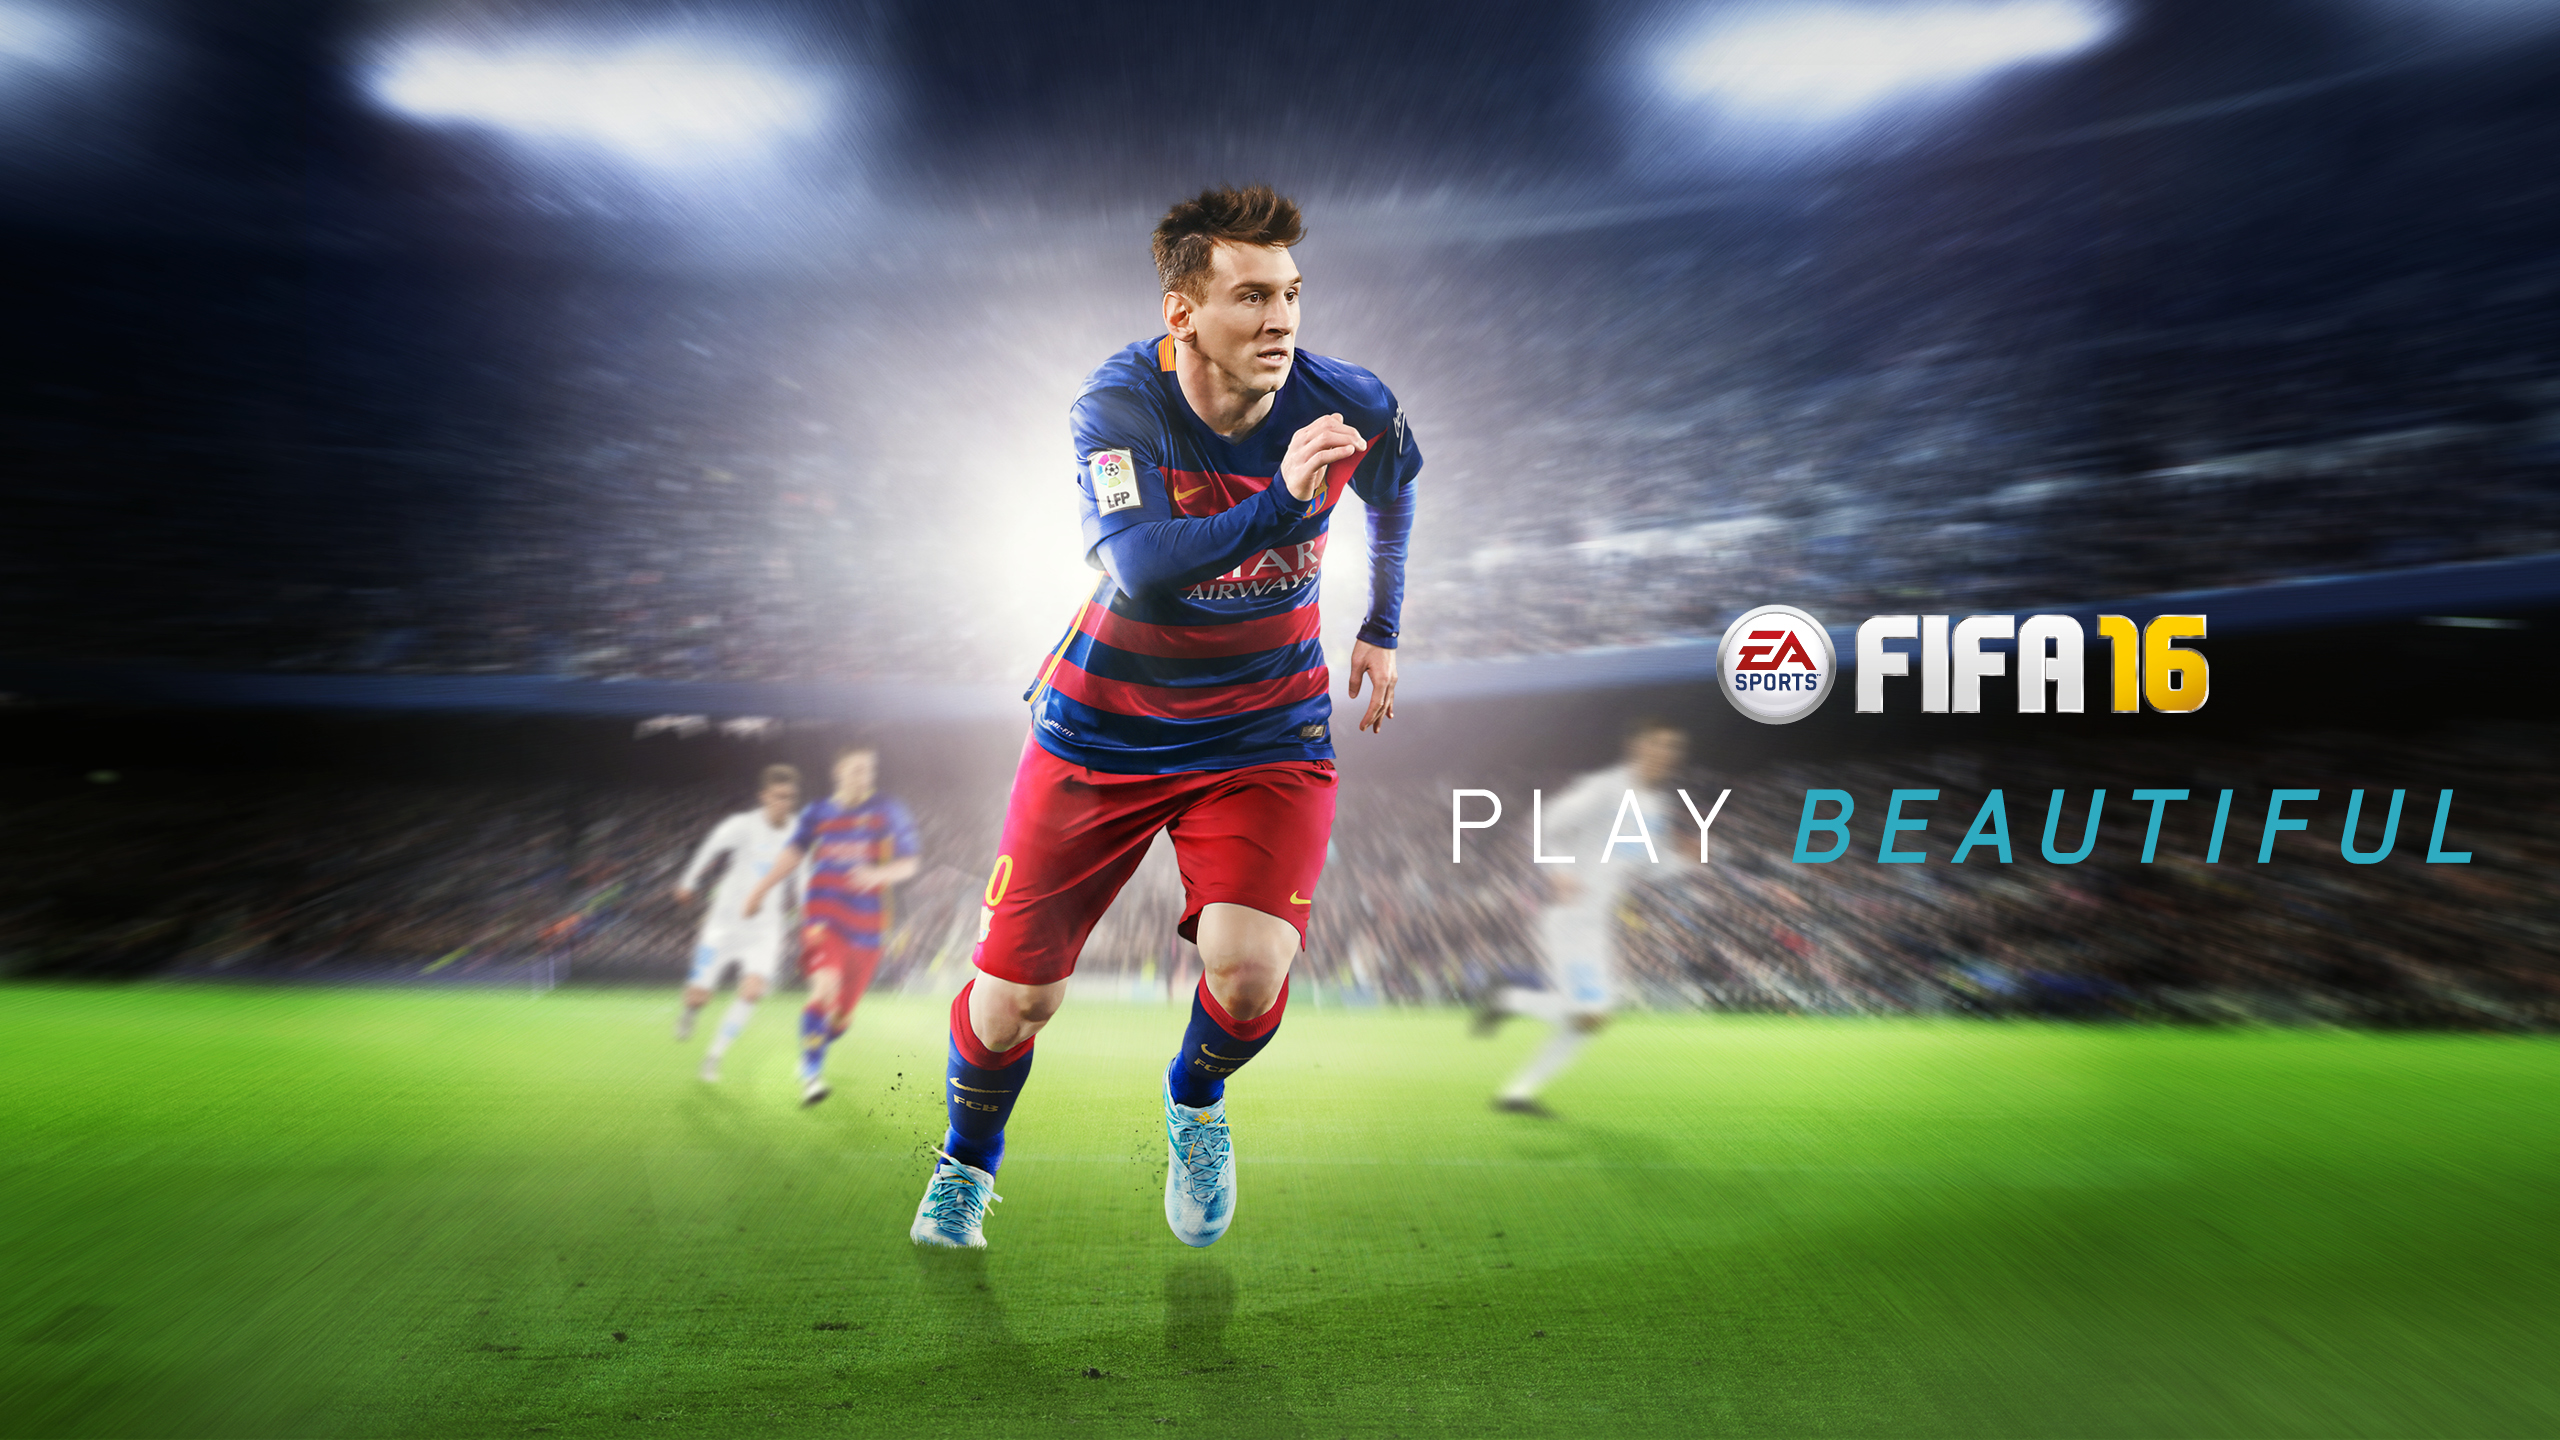 FIFA 16 Game Wallpapers | Wallpapers HD